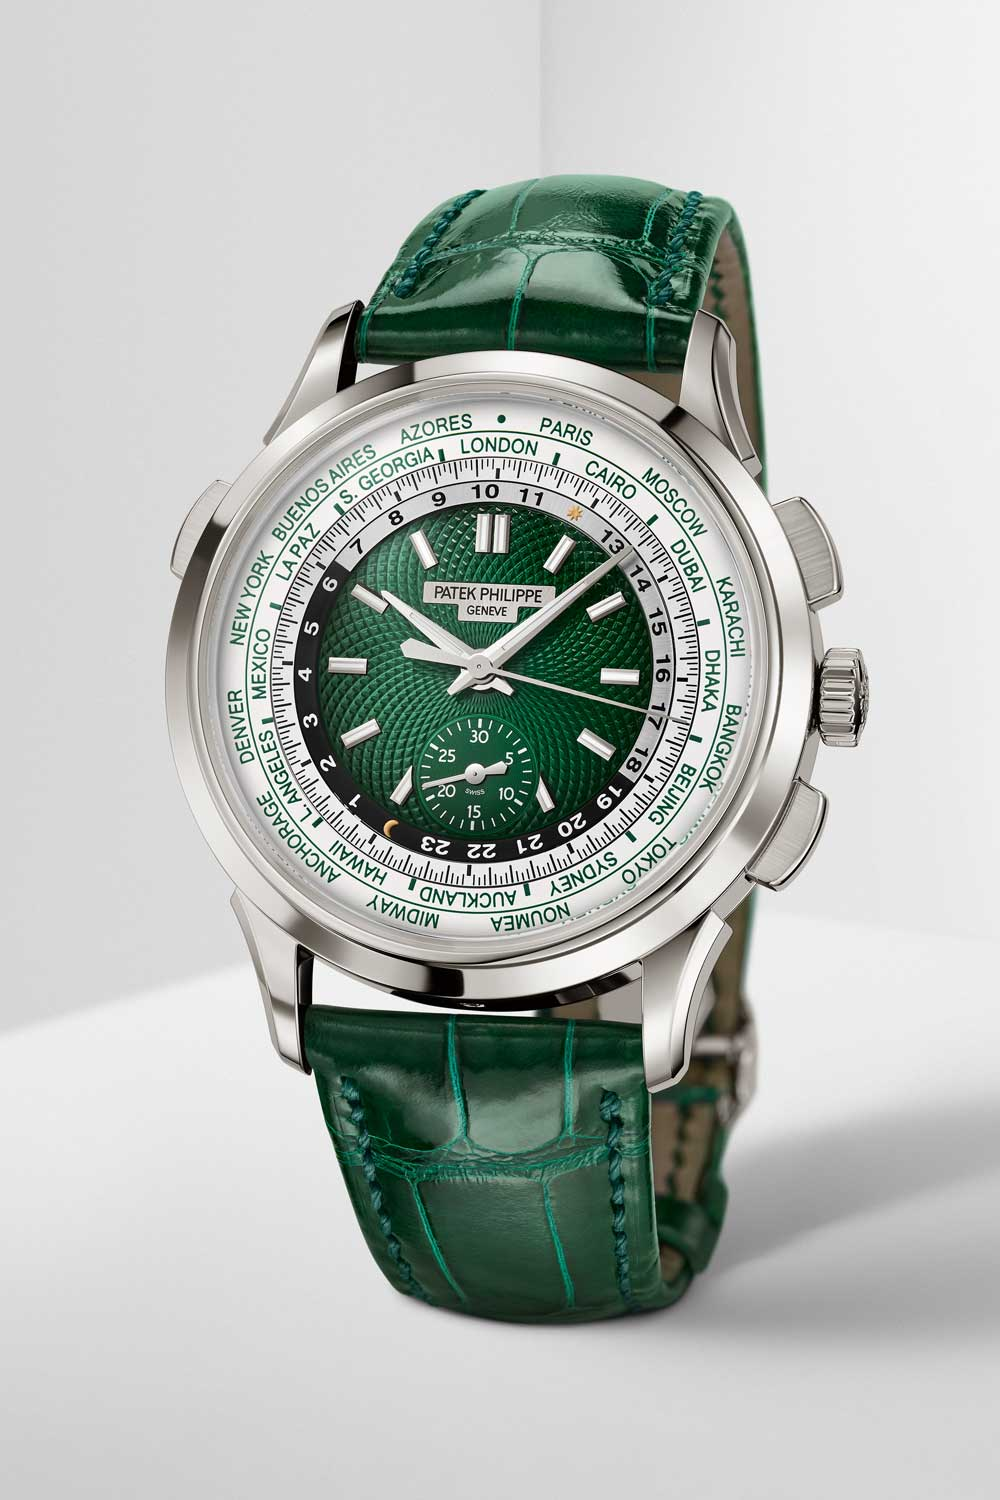 Reference 5930P-001 Self-winding World Time Flyback Chronograph in platinum